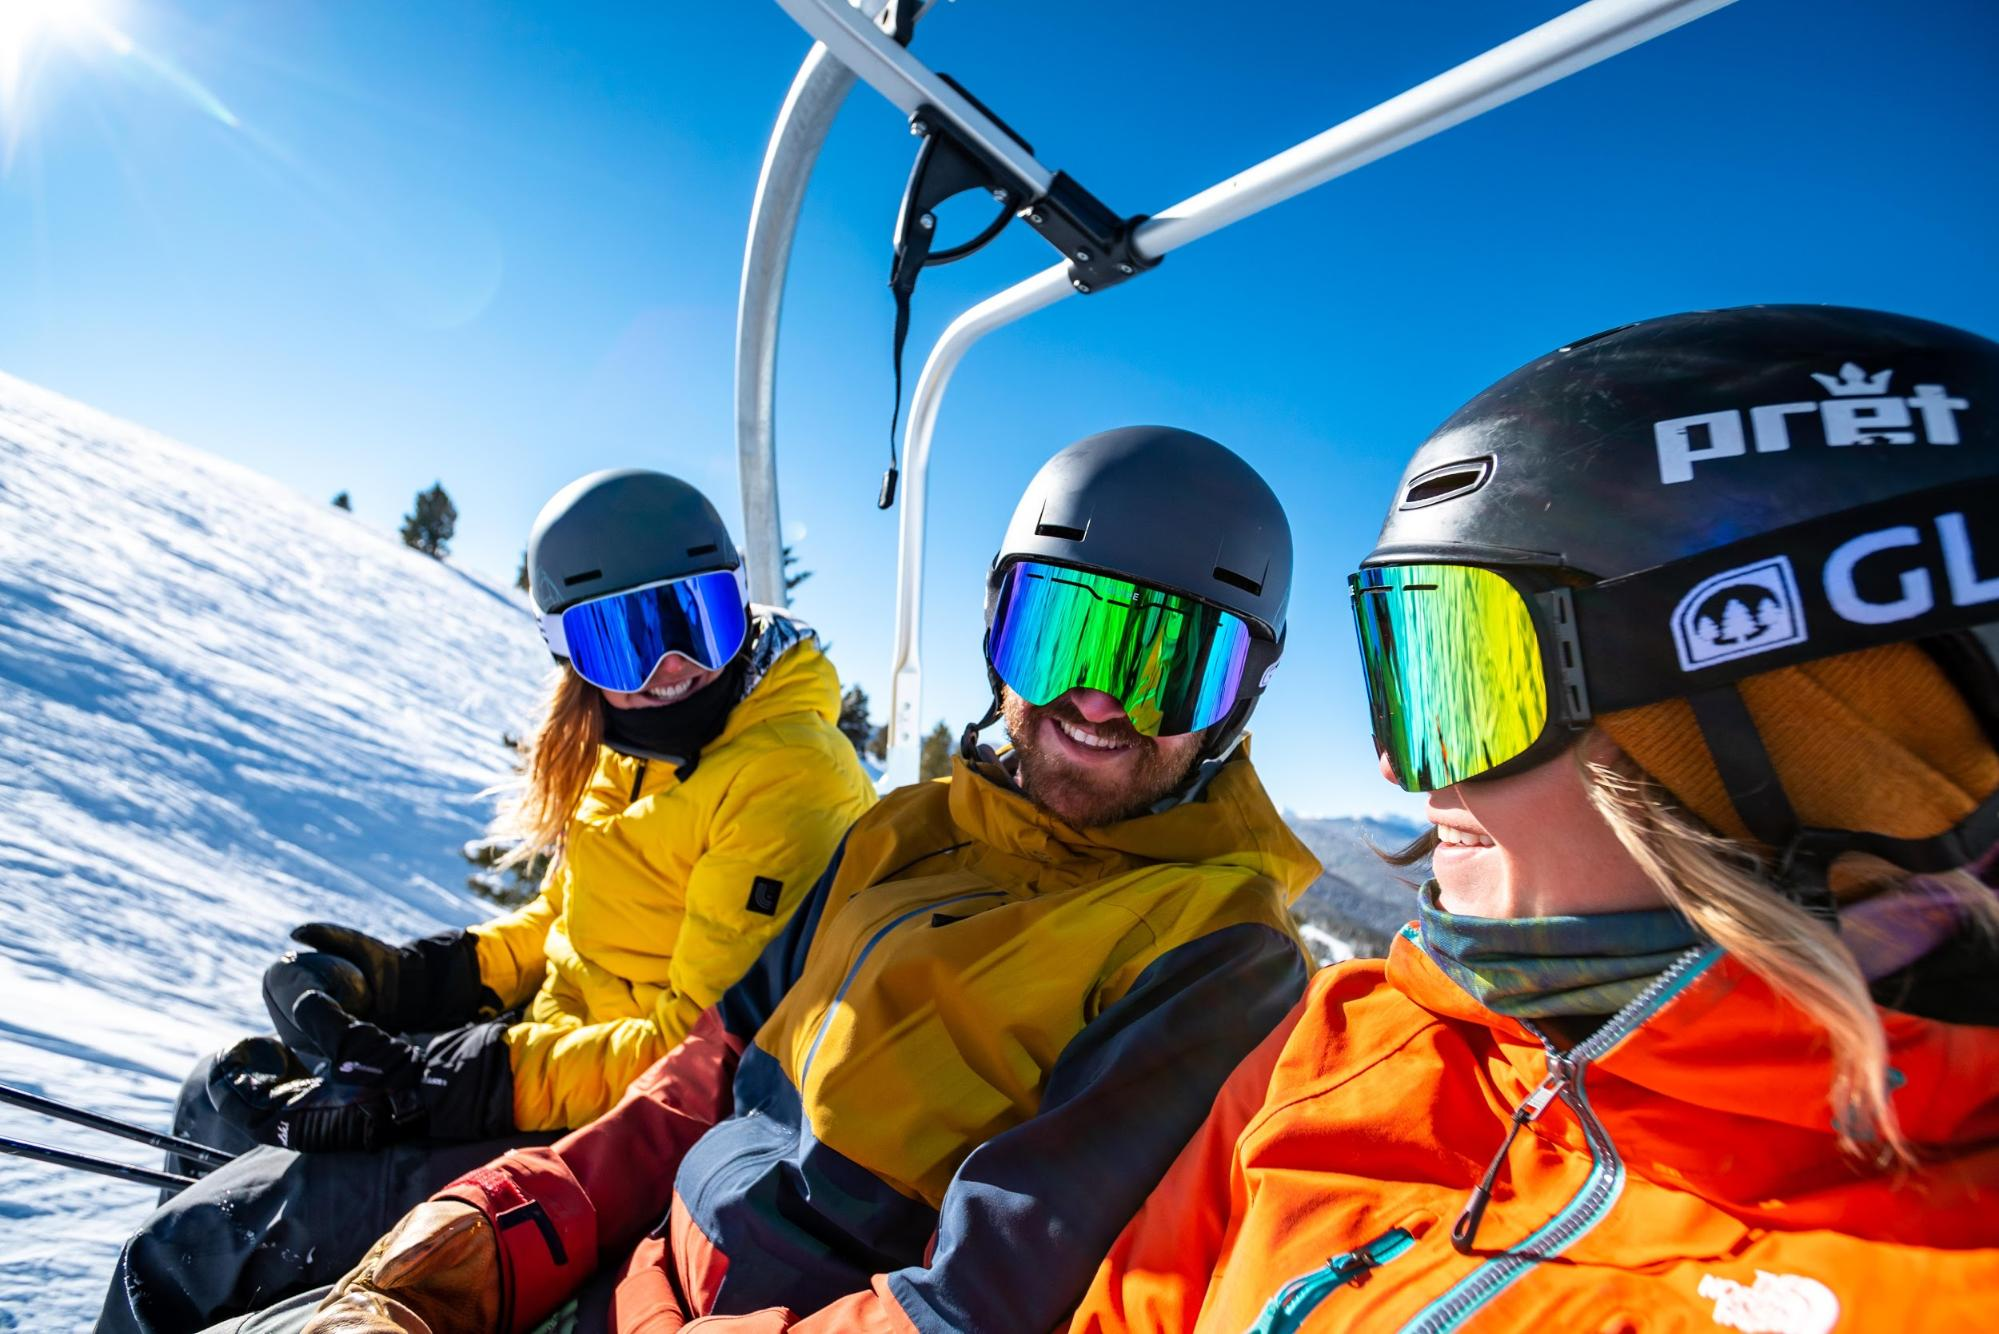 A group of three skiers on a chairlift all wearing goggles from Glade Optics.